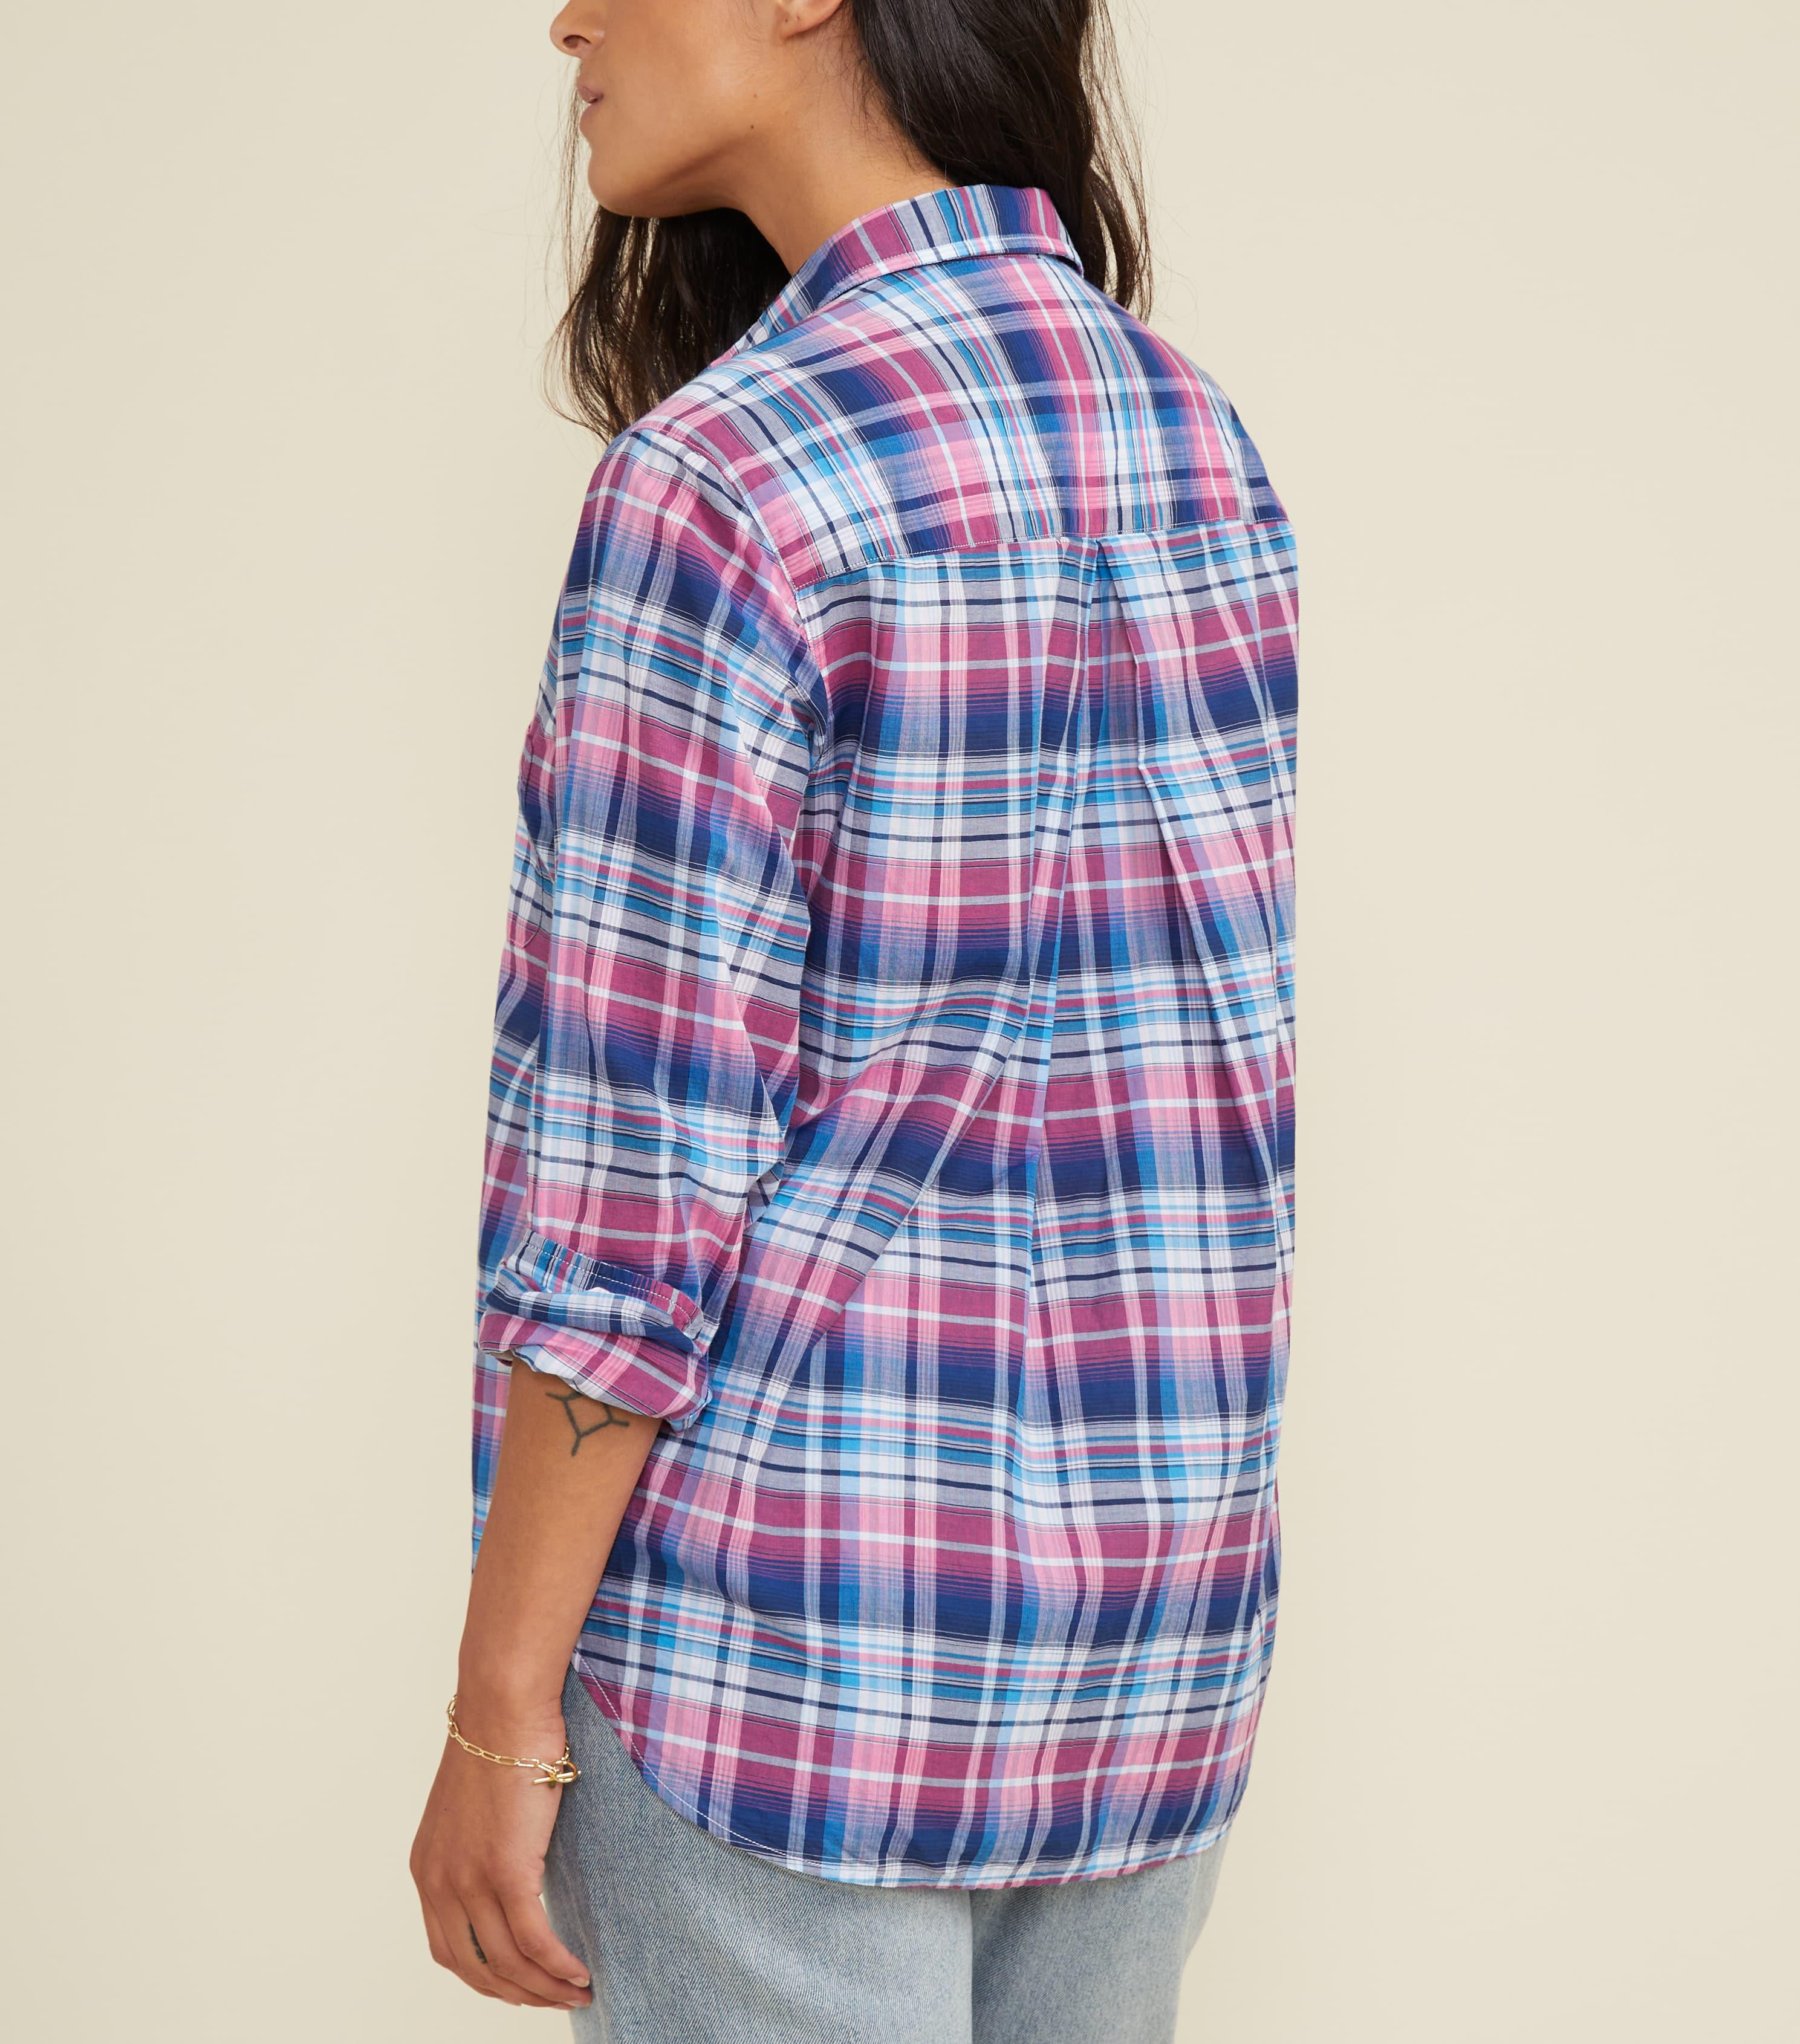 The Hero Blue and Pink Multi Plaid, Tissue Cotton Final Sale 2